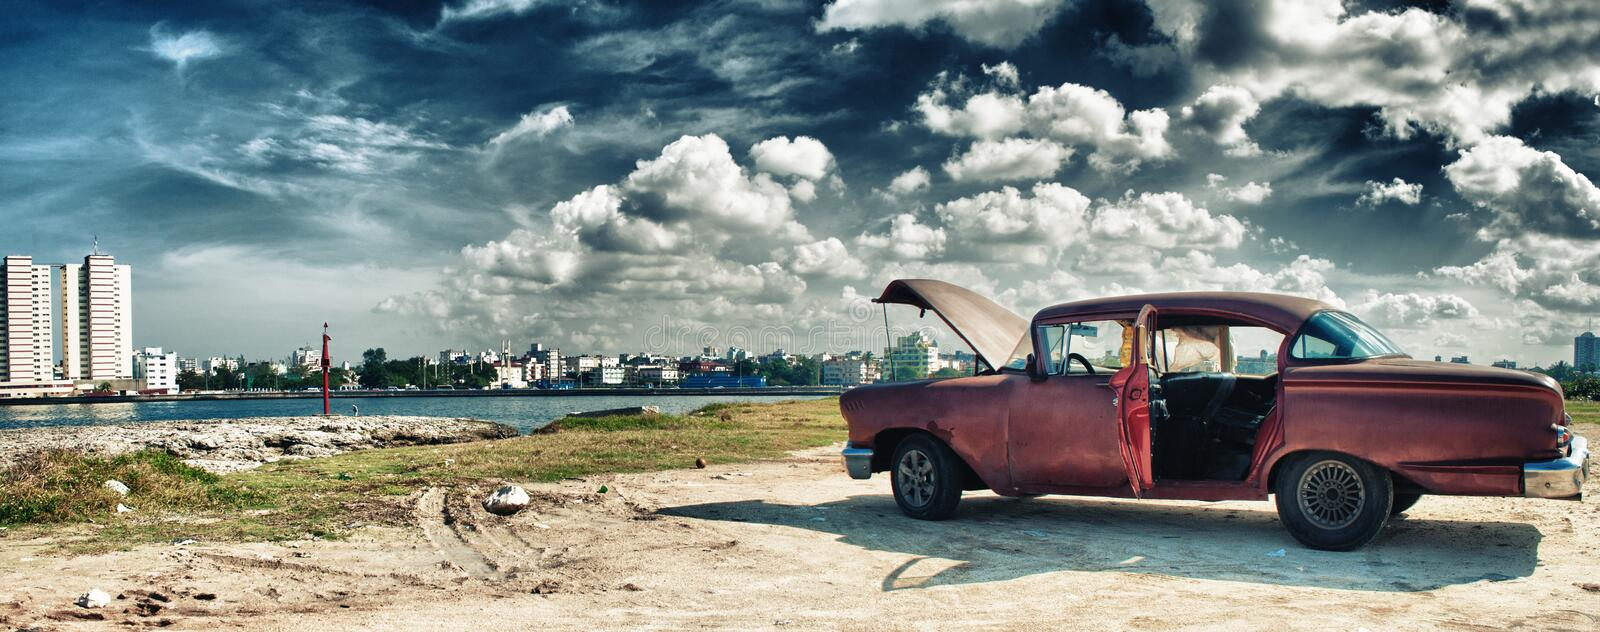 HAVANA, CUBA- DEC 12, 2016: panoramic view of havana and malecon with old american car parked whit engine ploblem stock photo